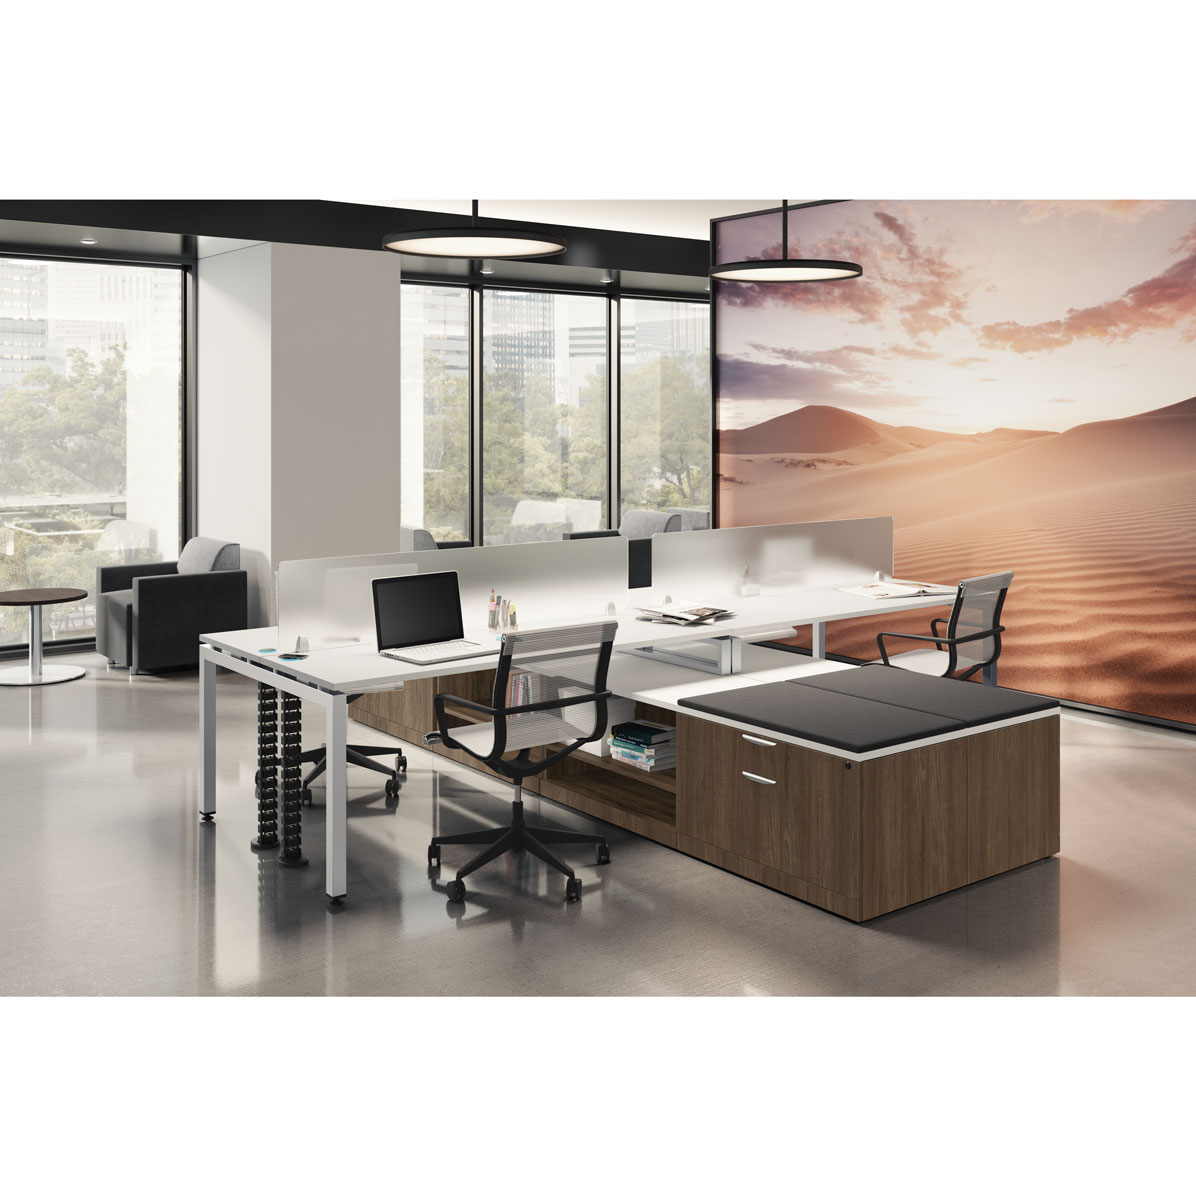 Office Source Variant 4 Person Workstation OS157